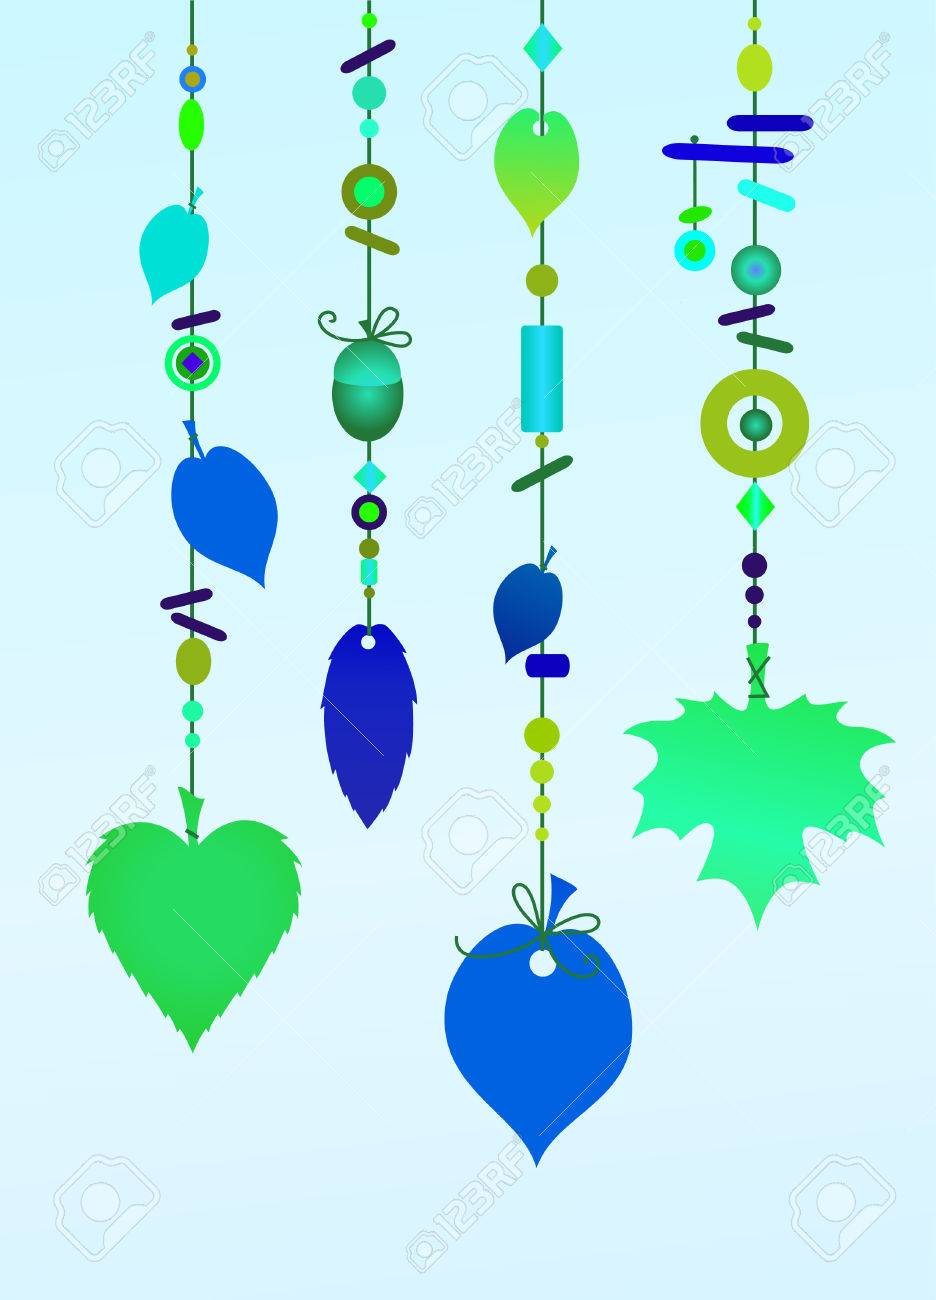 Vector Illustration Of Decorative Wind Chimes With Floral Leaf